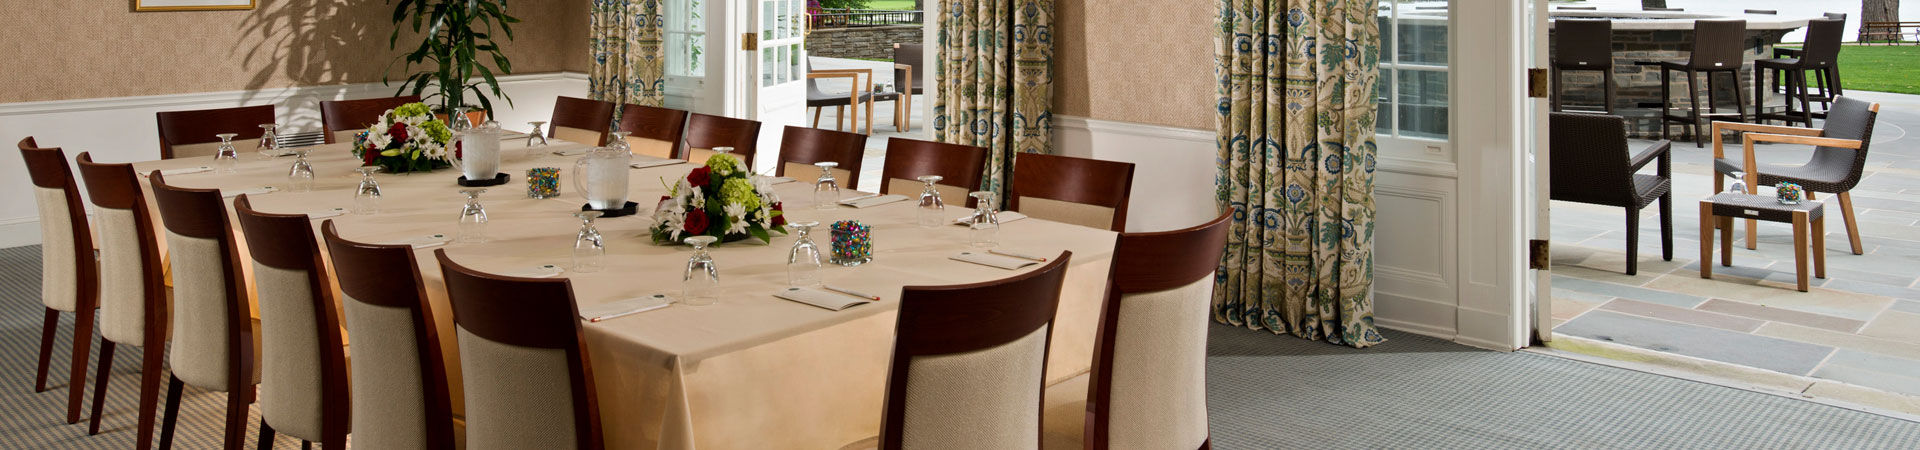 Venues in The Otesaga Resort Hotel Cooperstown, New York